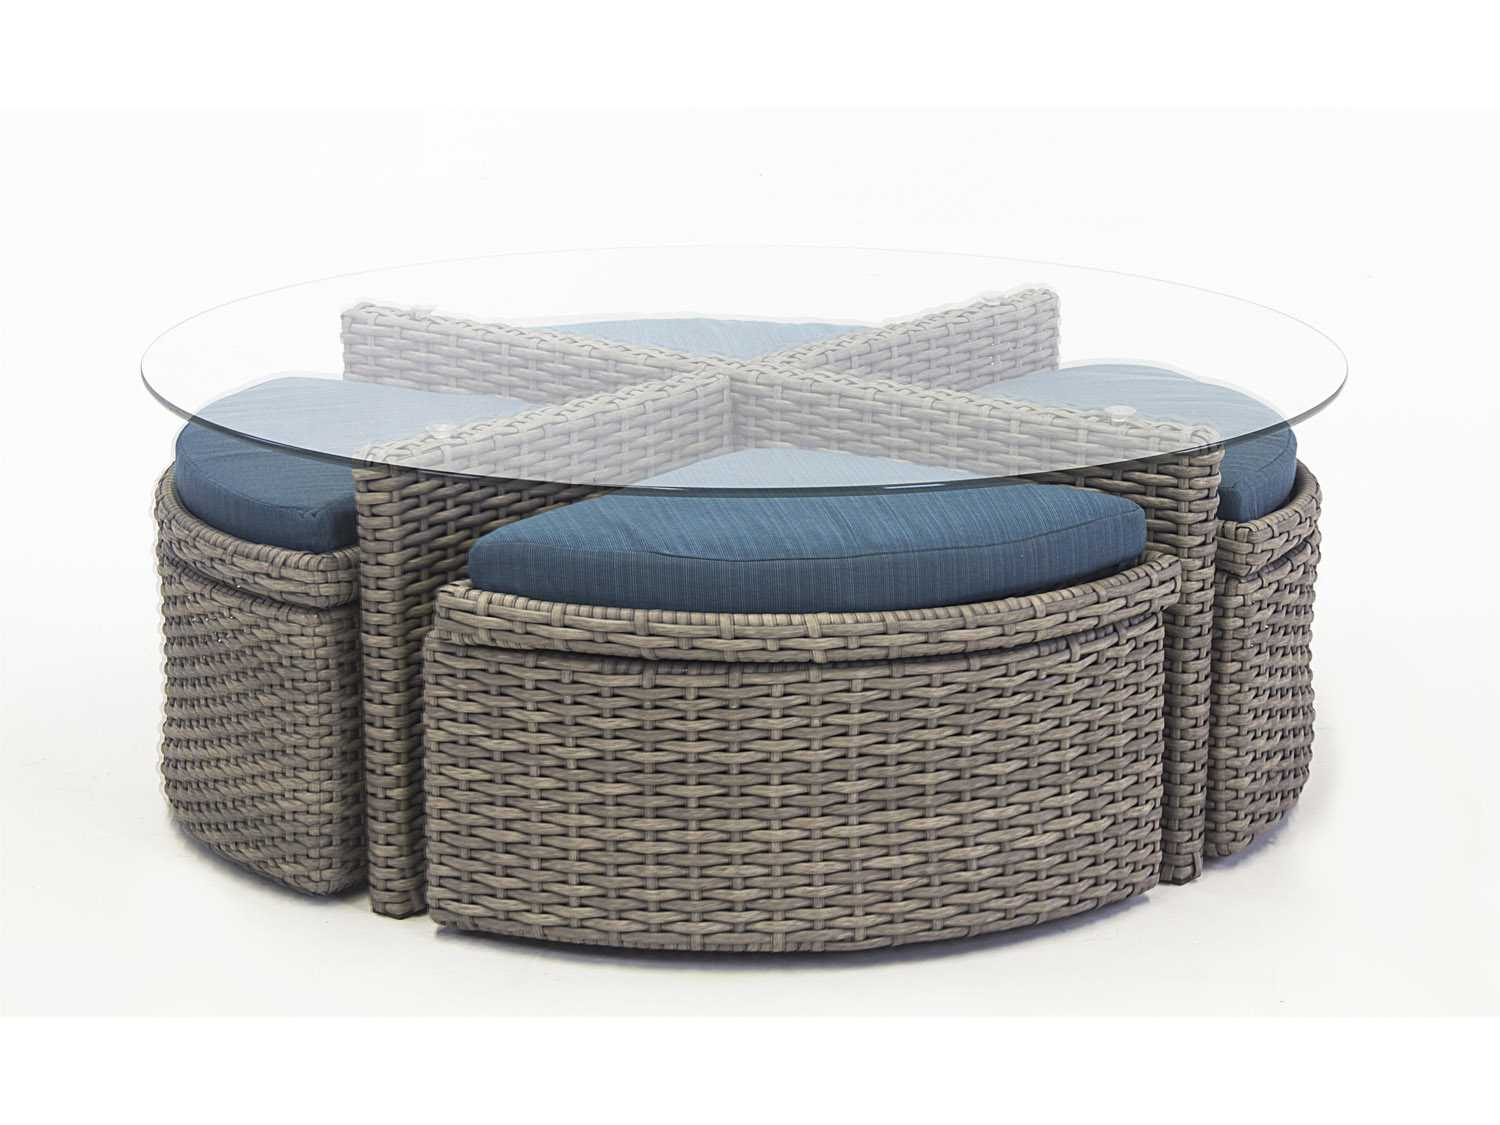 Rattan Saint Tropez Wicker 48 Round Glass Coffee Table With 4 Ottomans